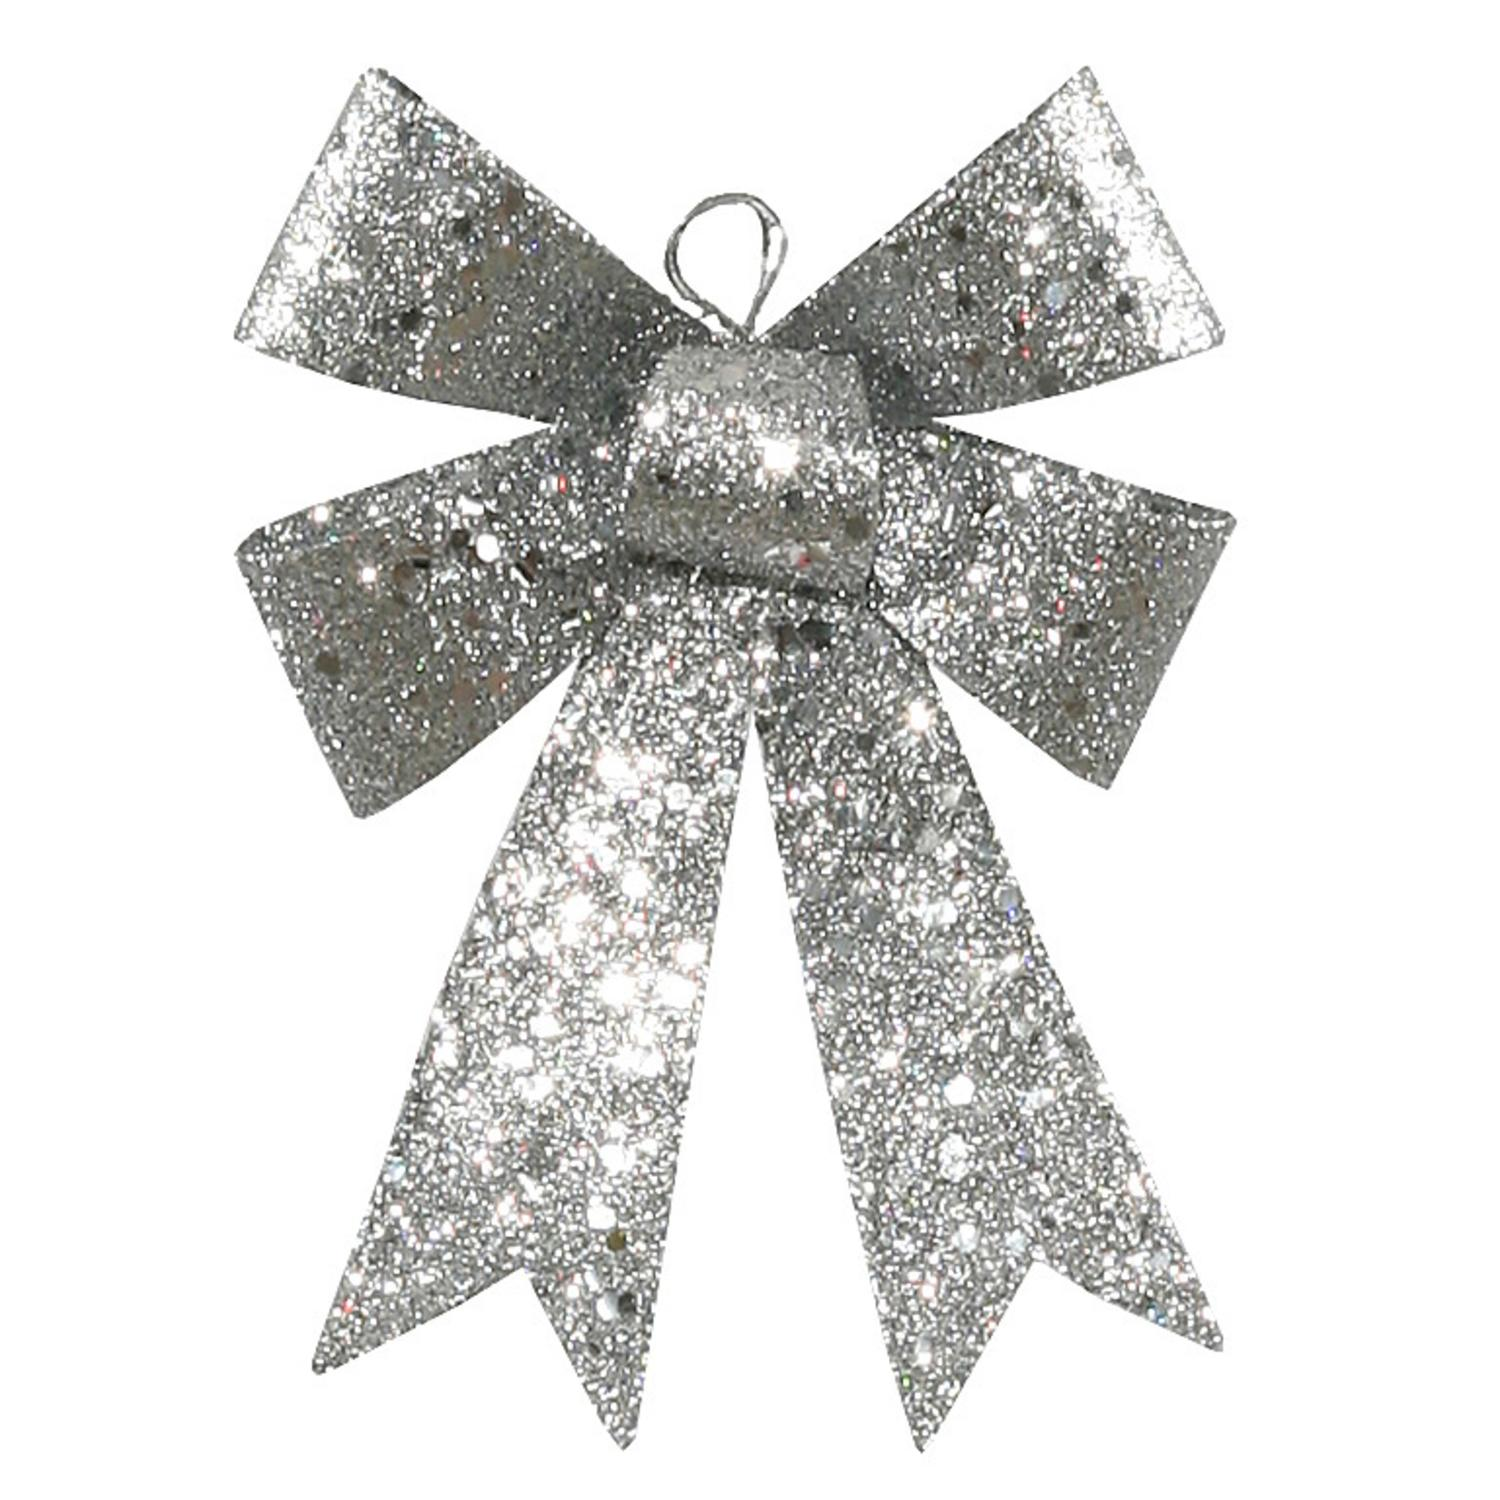 "5"" Silver Sequin and Glitter Bow Christmas Ornament"